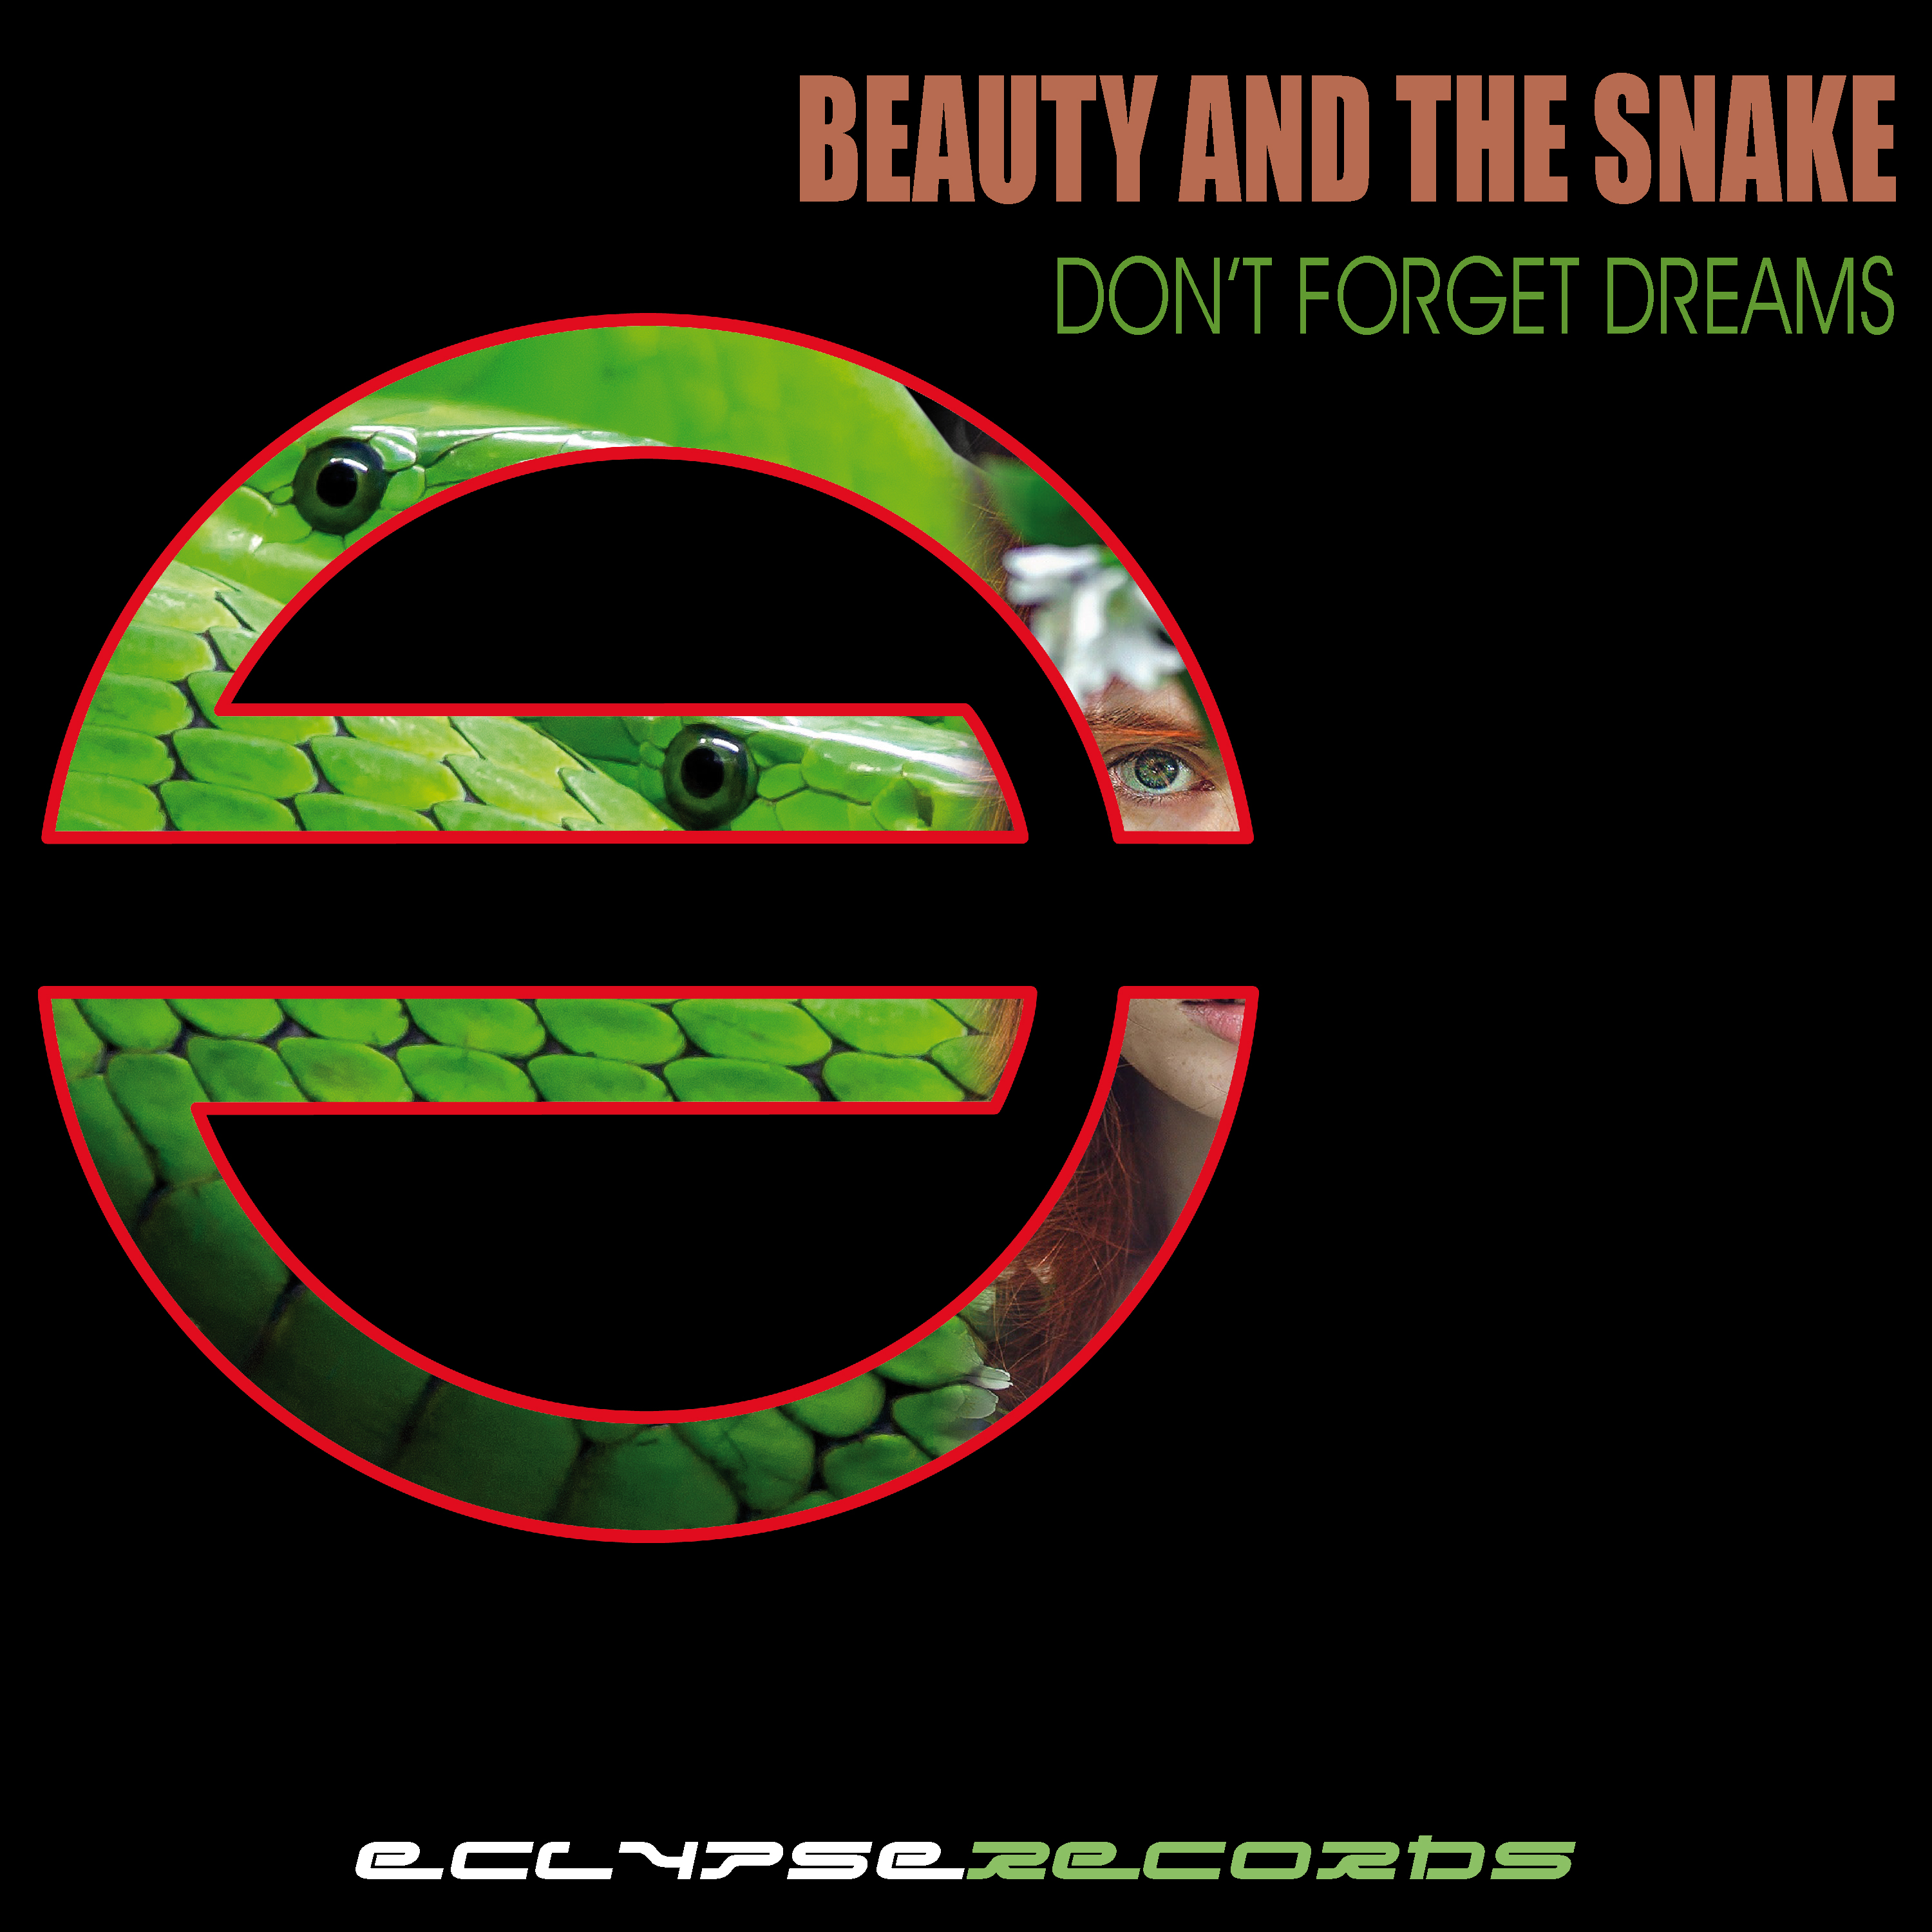 Beauty and the snake - Don't forget dreams